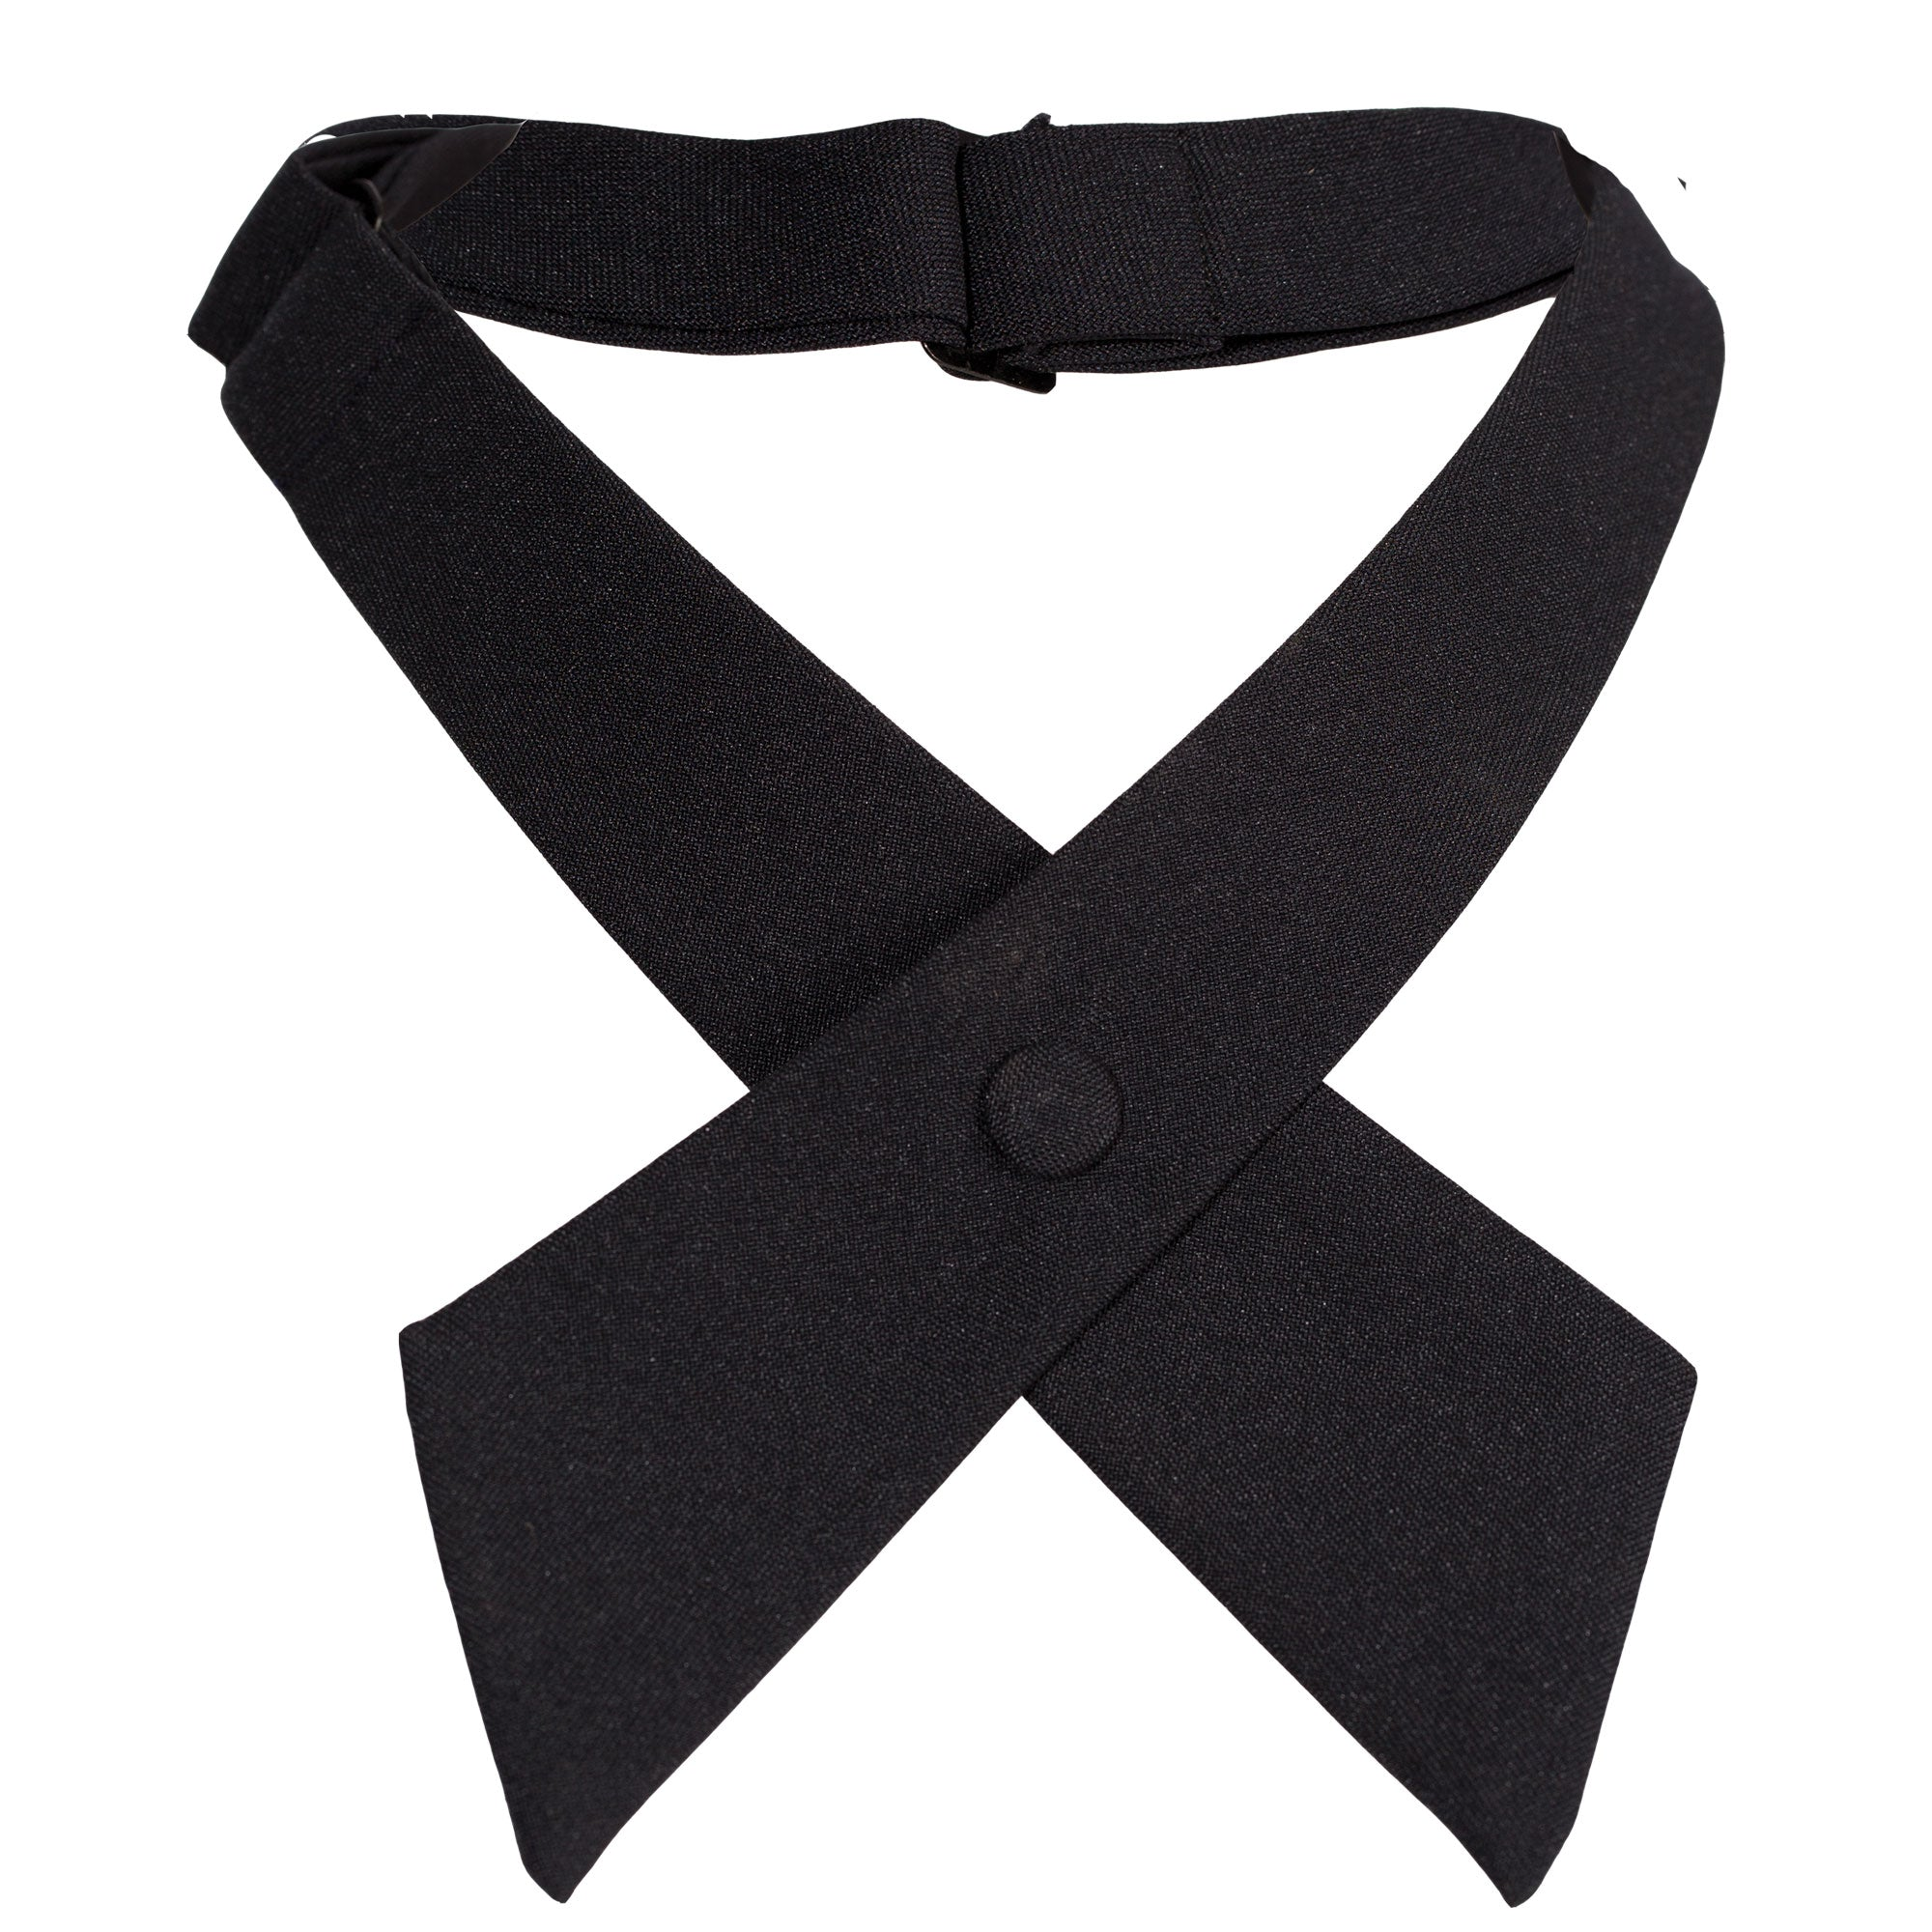 Tact Squad TIECO Women's Cross-Over Tie - Security Pro USA